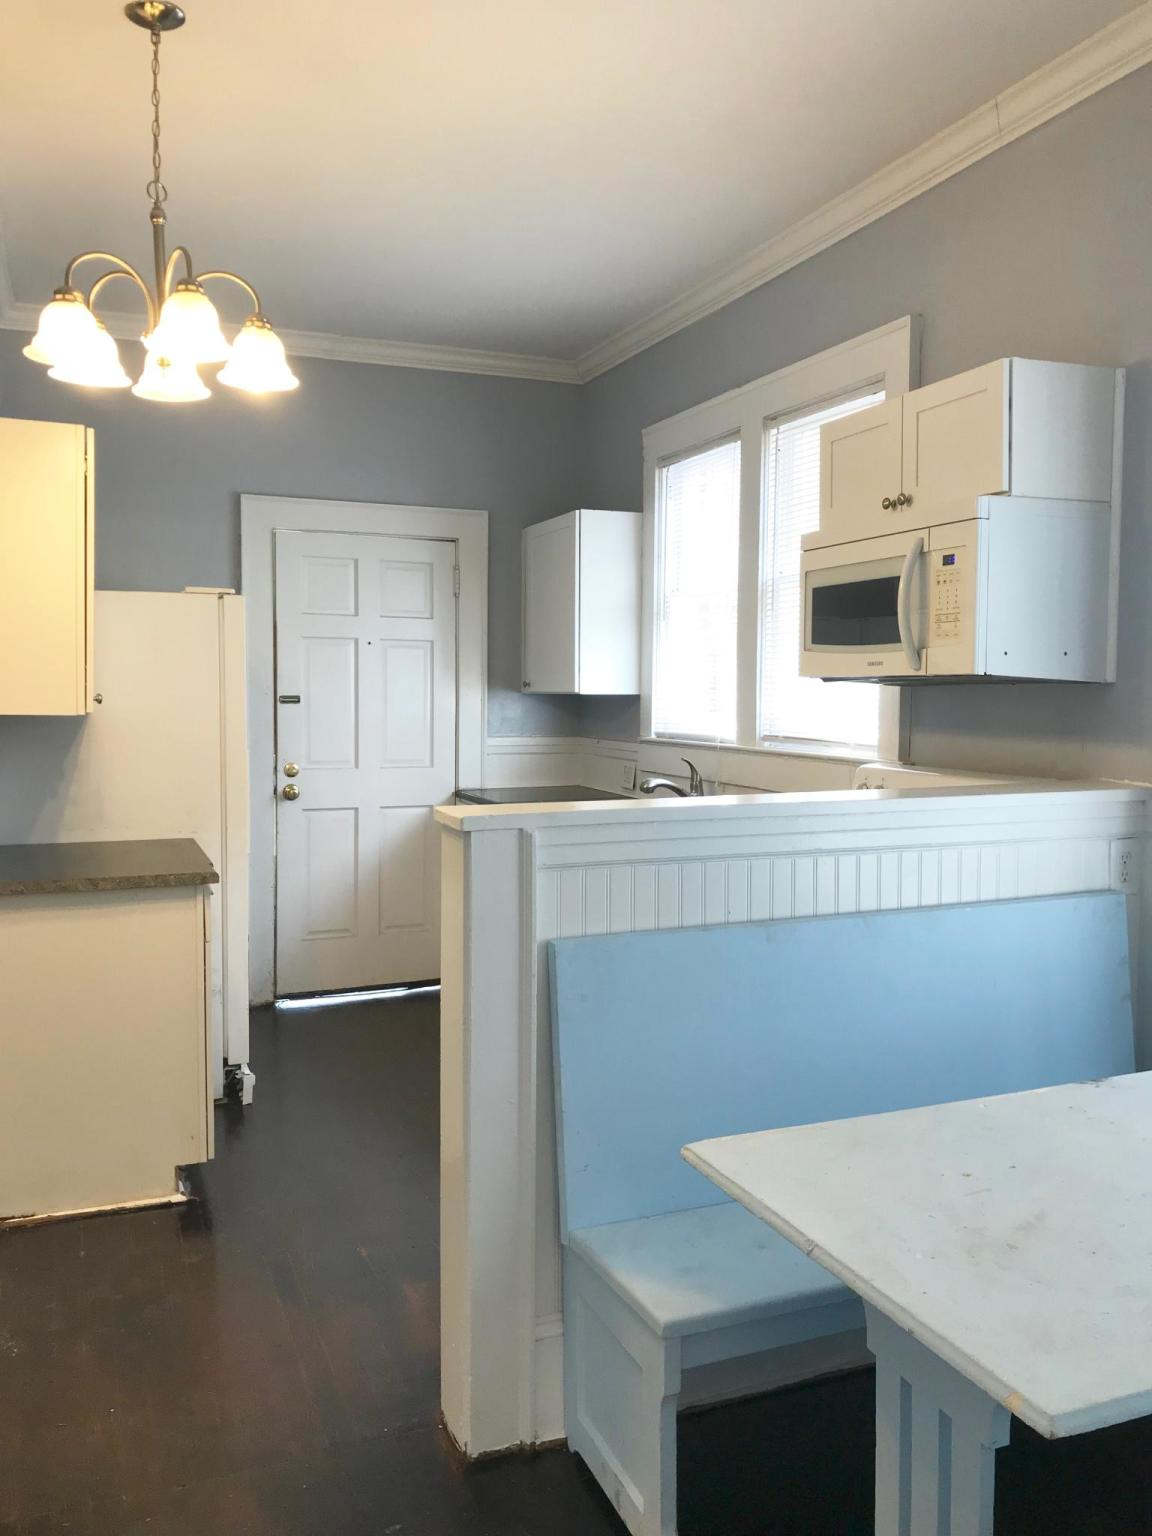 119 W Bell St #119 For Rent - Statesville, NC | Trulia